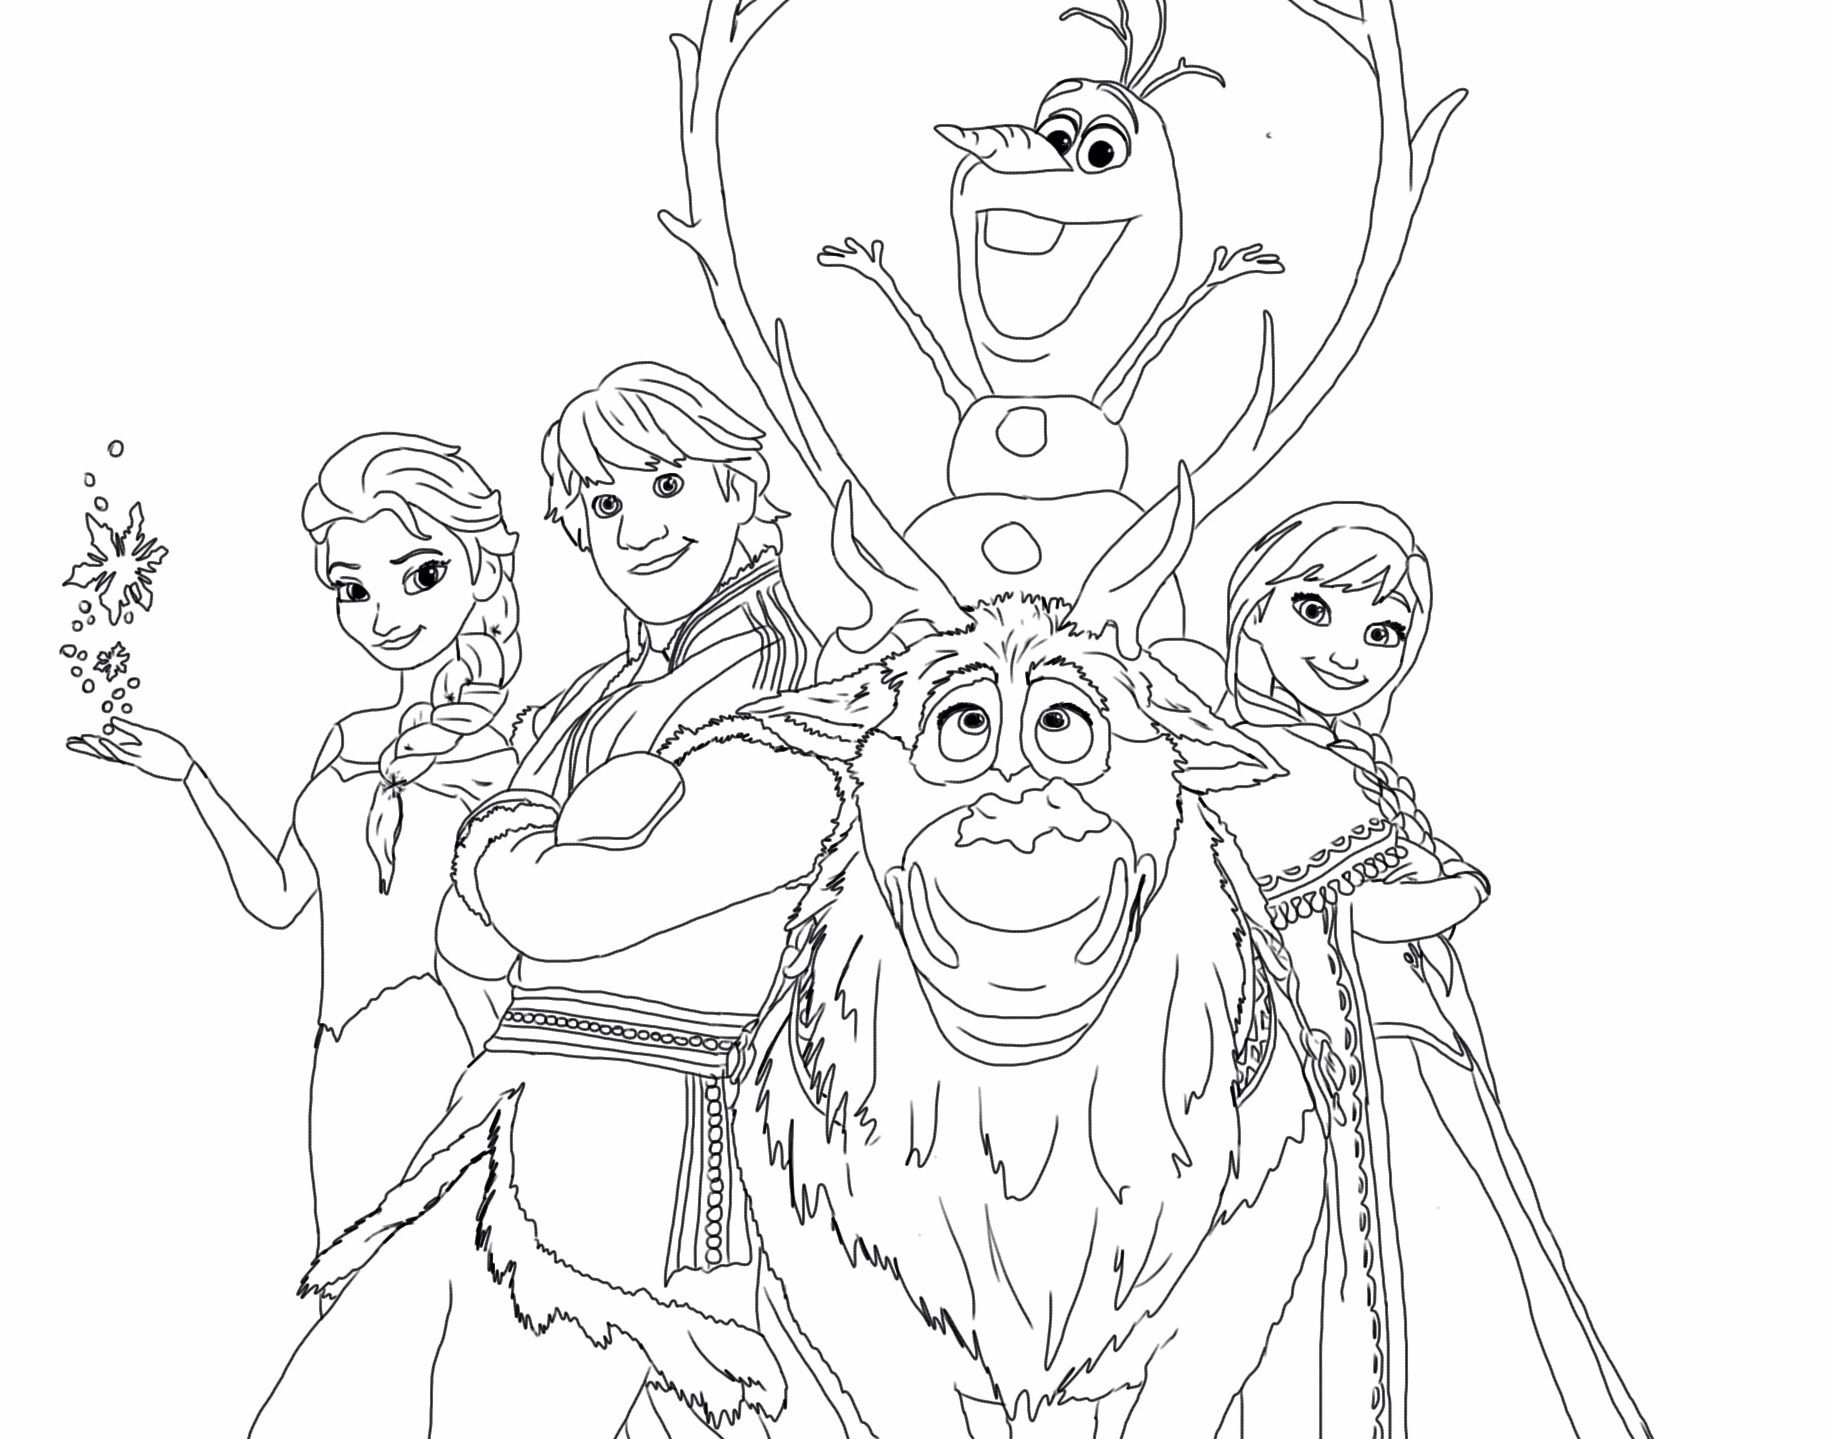 coloring page of frozen characters